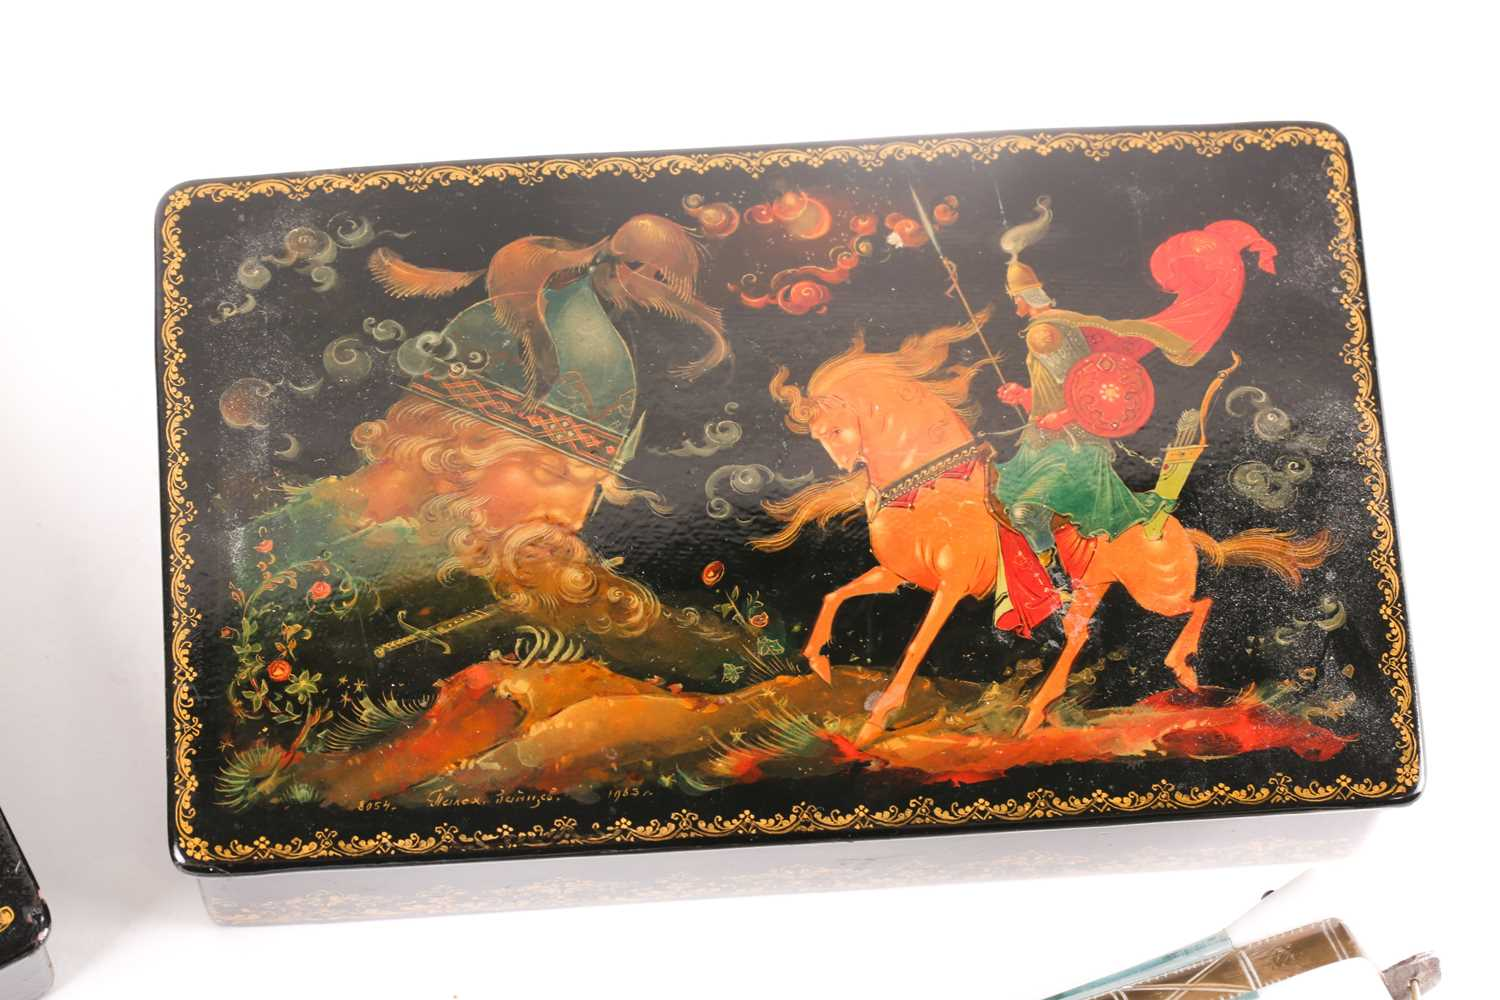 Two Russian lacquer boxes, 20th century, each painted with folklore scene, both signed, the - Image 2 of 6